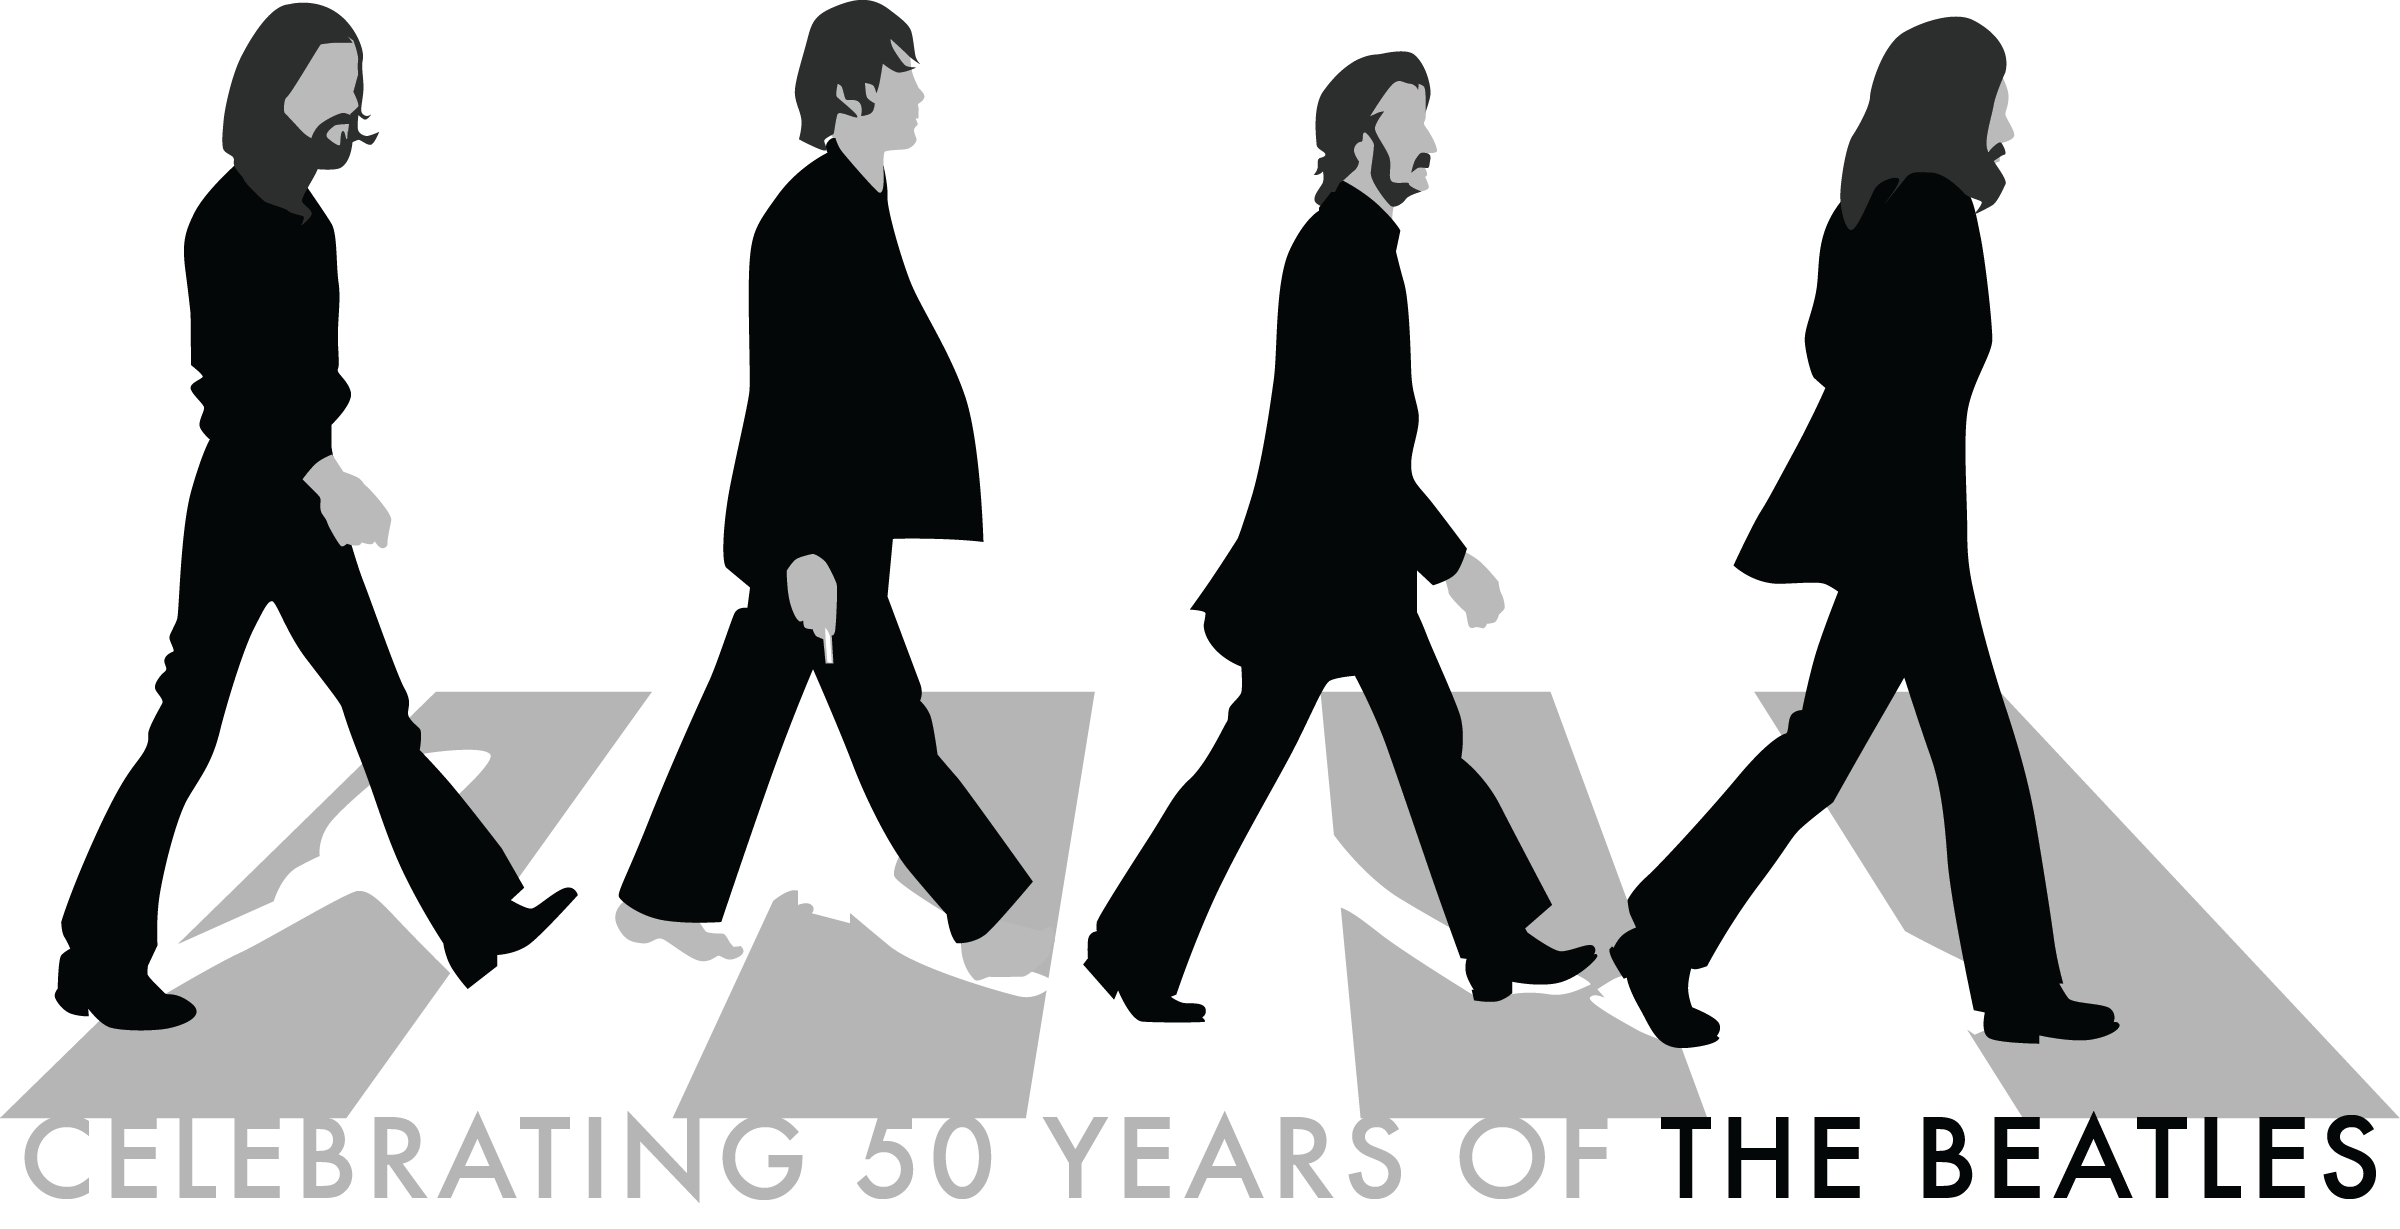 Fourth Estate Celebrates 50 Years Of Beatlemania With A List The Bands Top Ten Songs